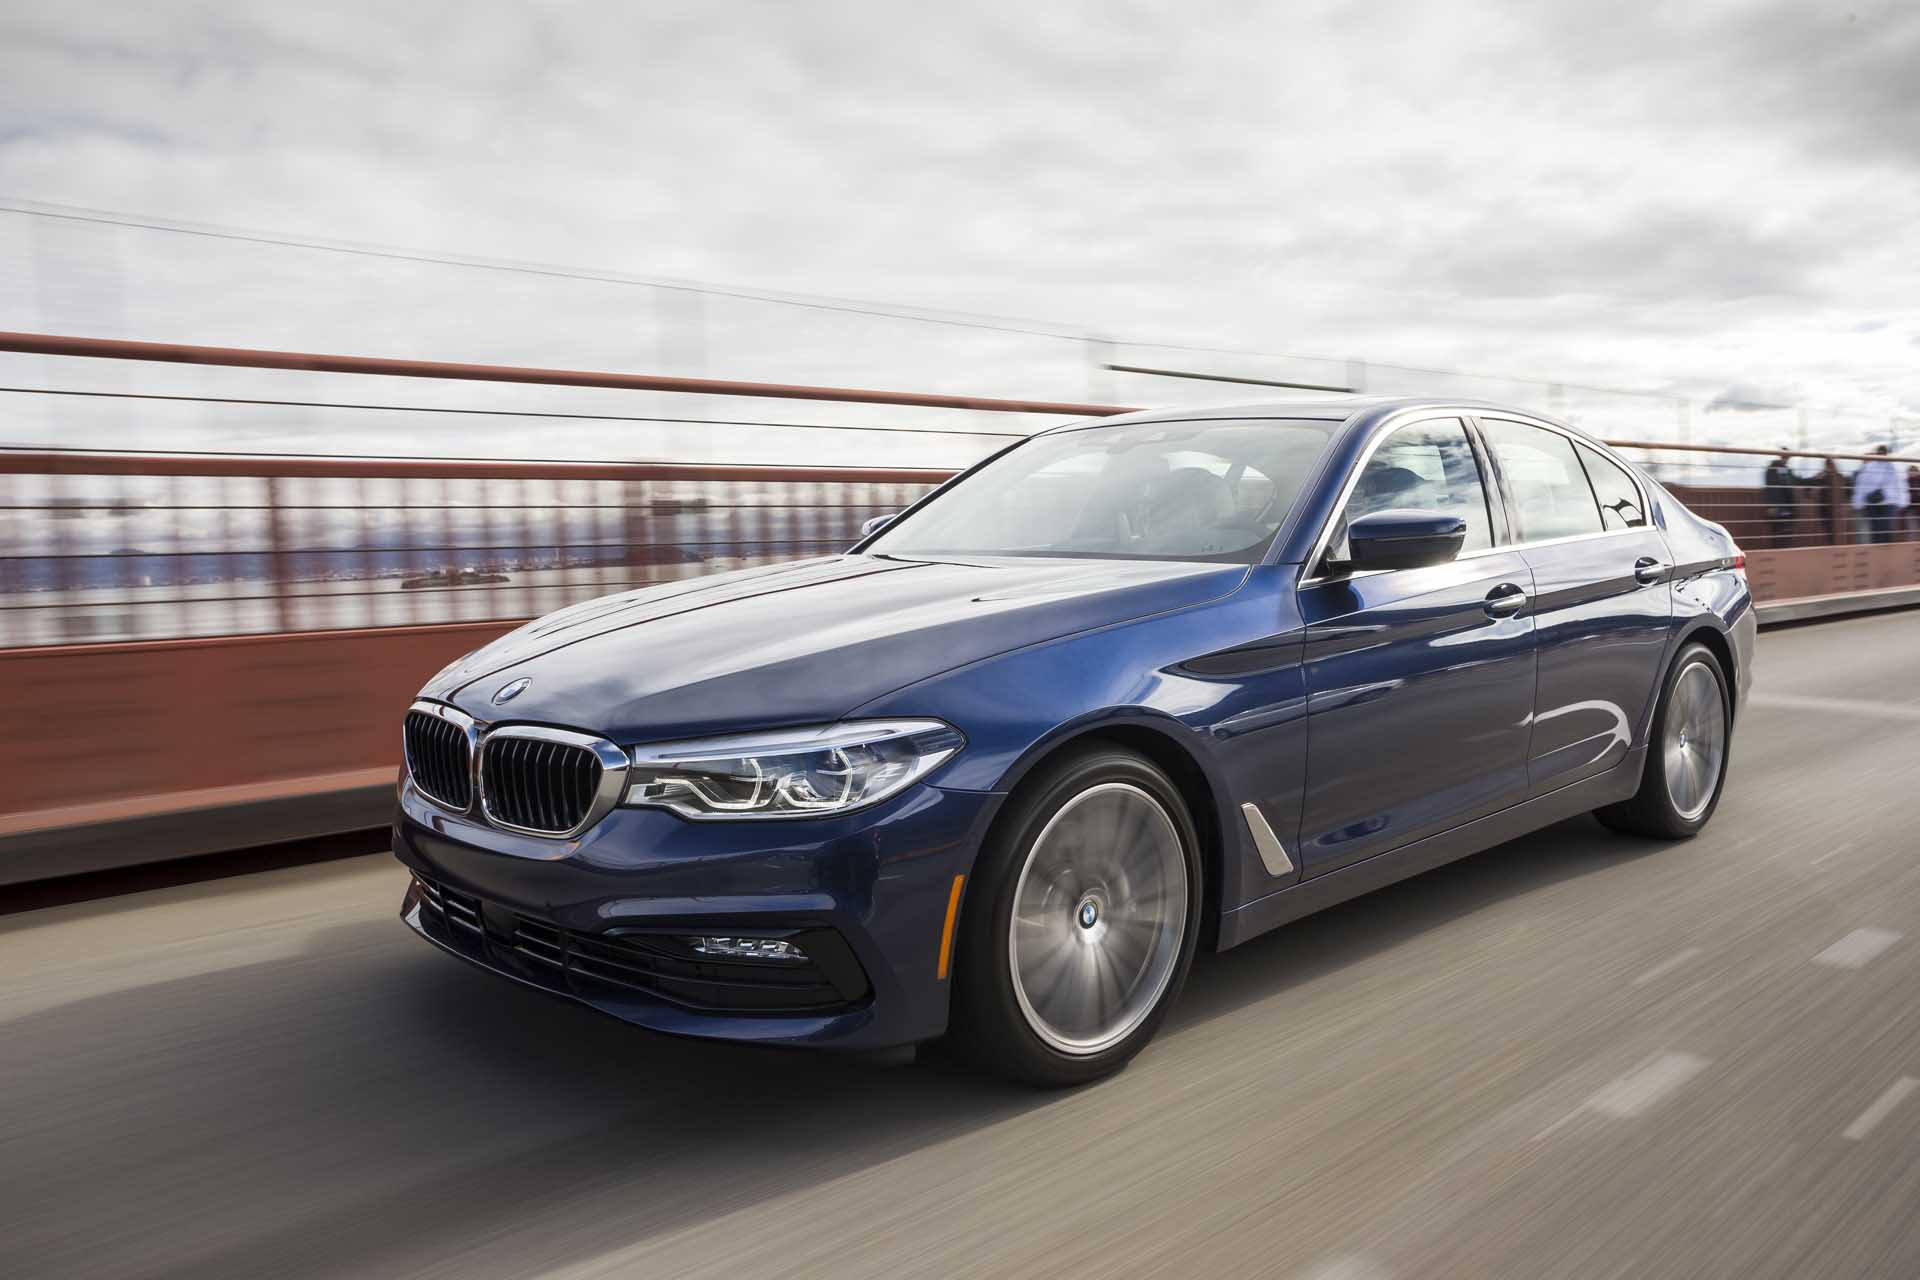 BMW to offer full-electric 5 Series, X1 models